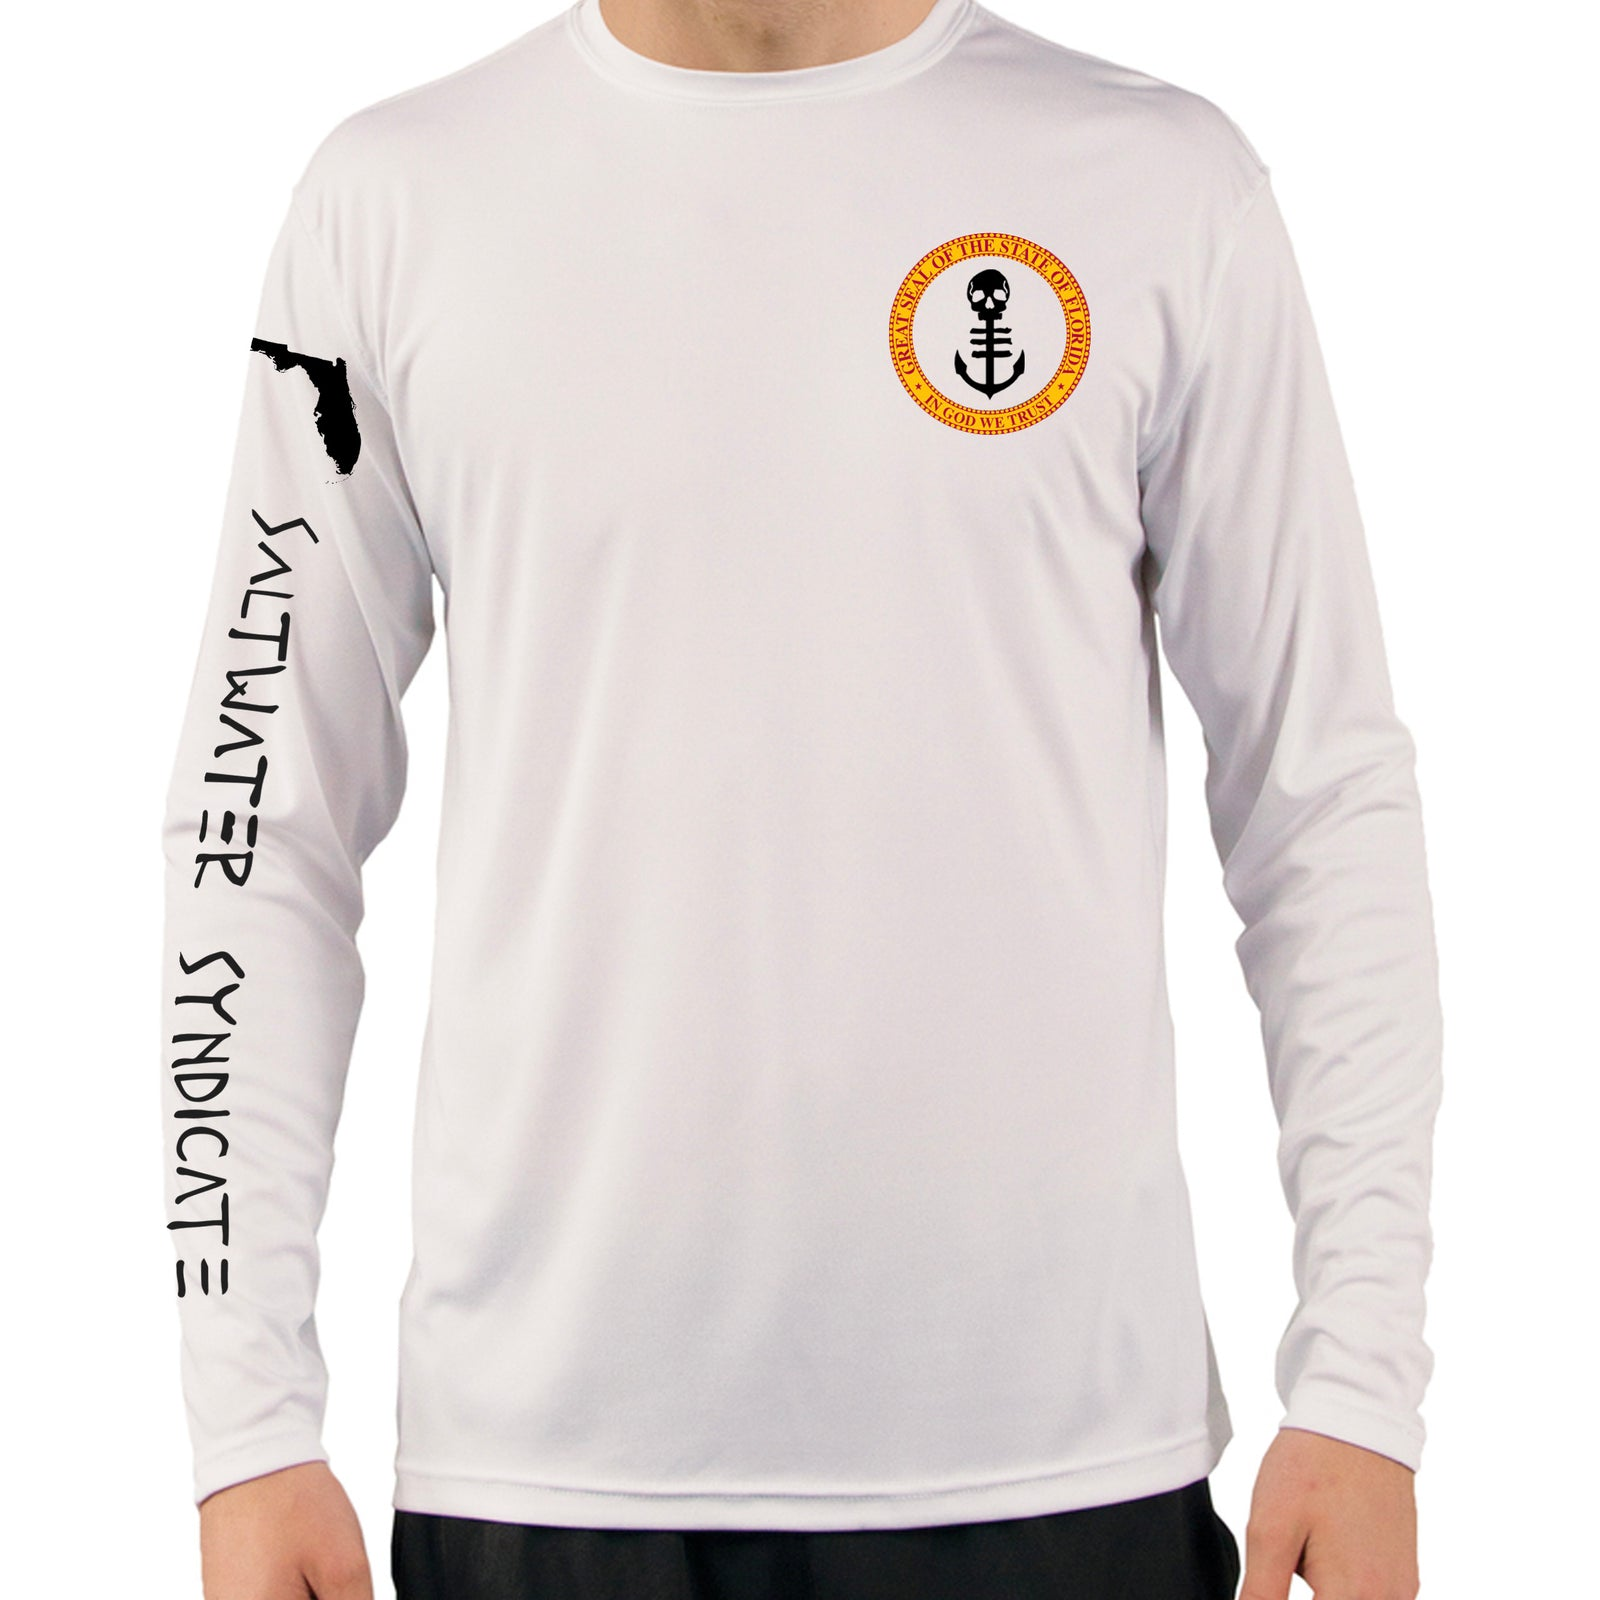 Floridian UPF Performance Long Sleeve - White